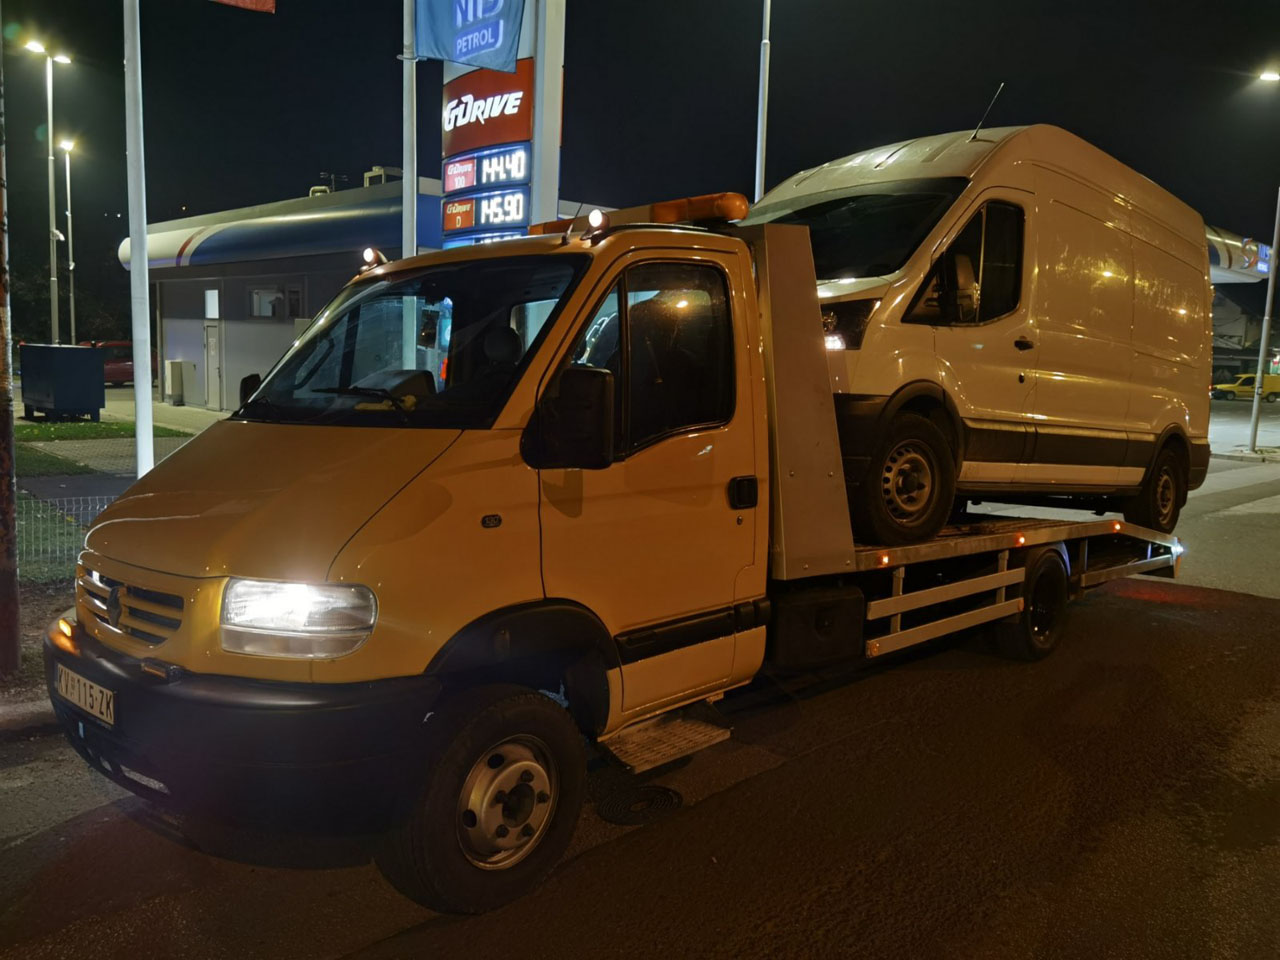 CAR AND TOWING SERVICE SEKULA 2006 Towing services Kraljevo - Photo 3